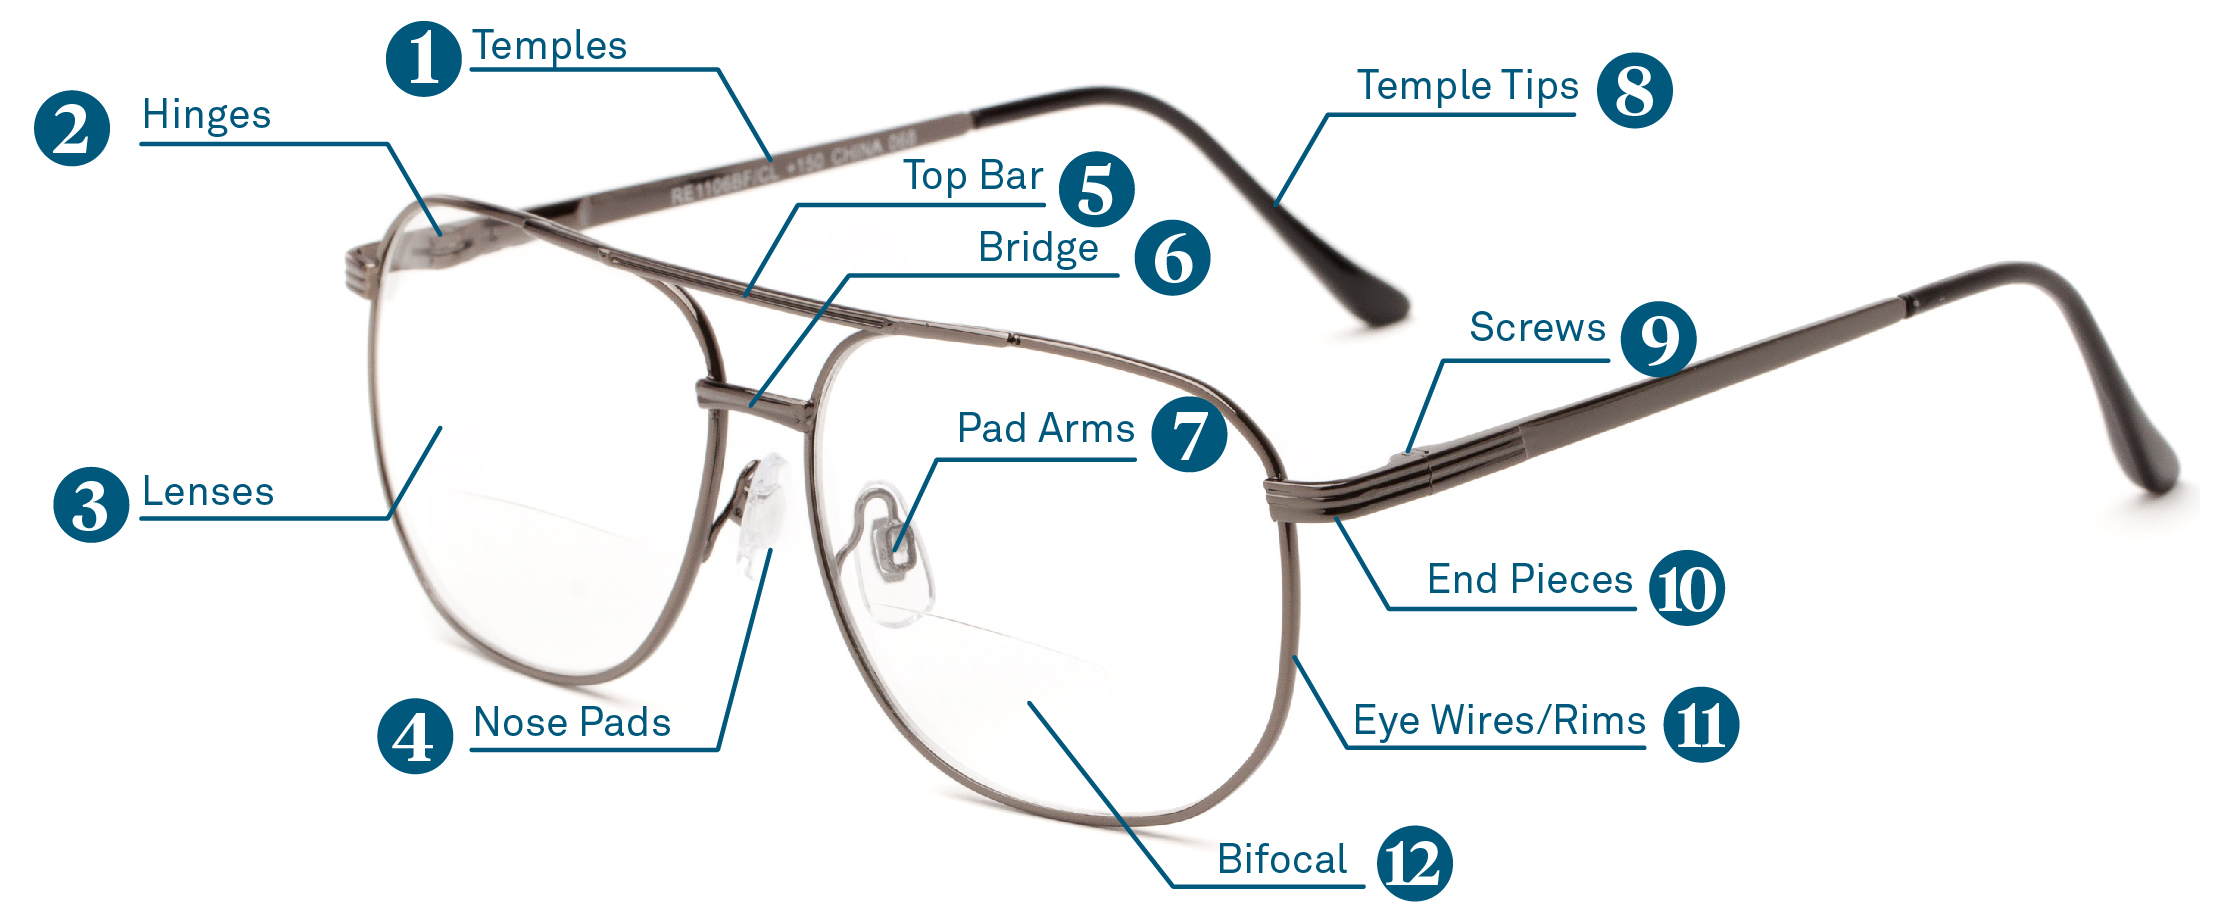 parts of an eyeglass frame